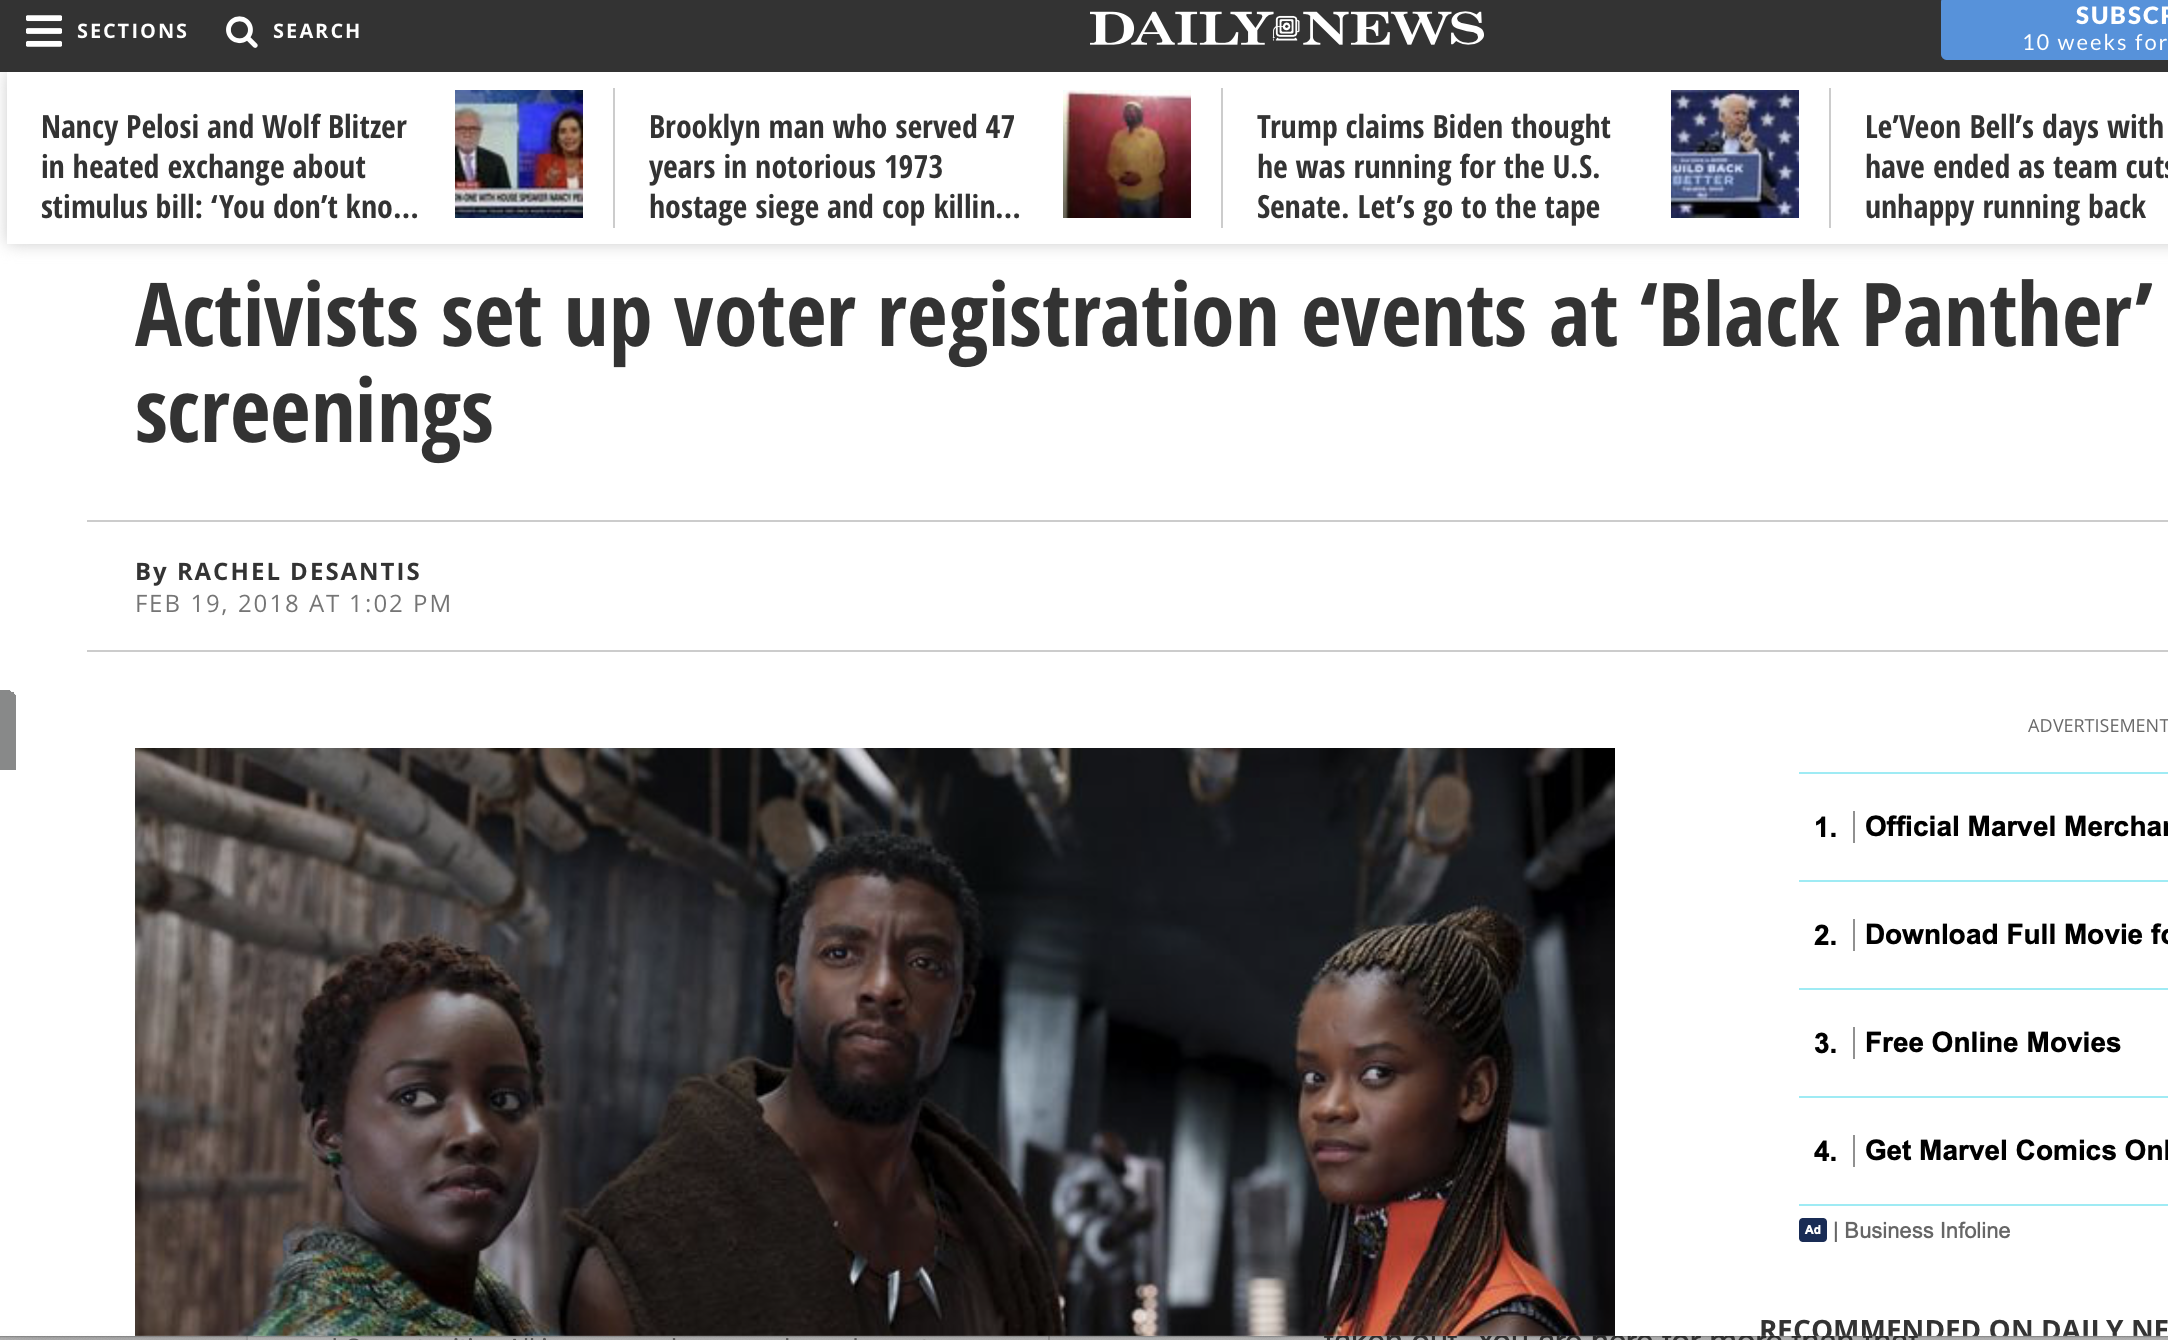 Activists set up voter registration events at 'Black Panther' screenings